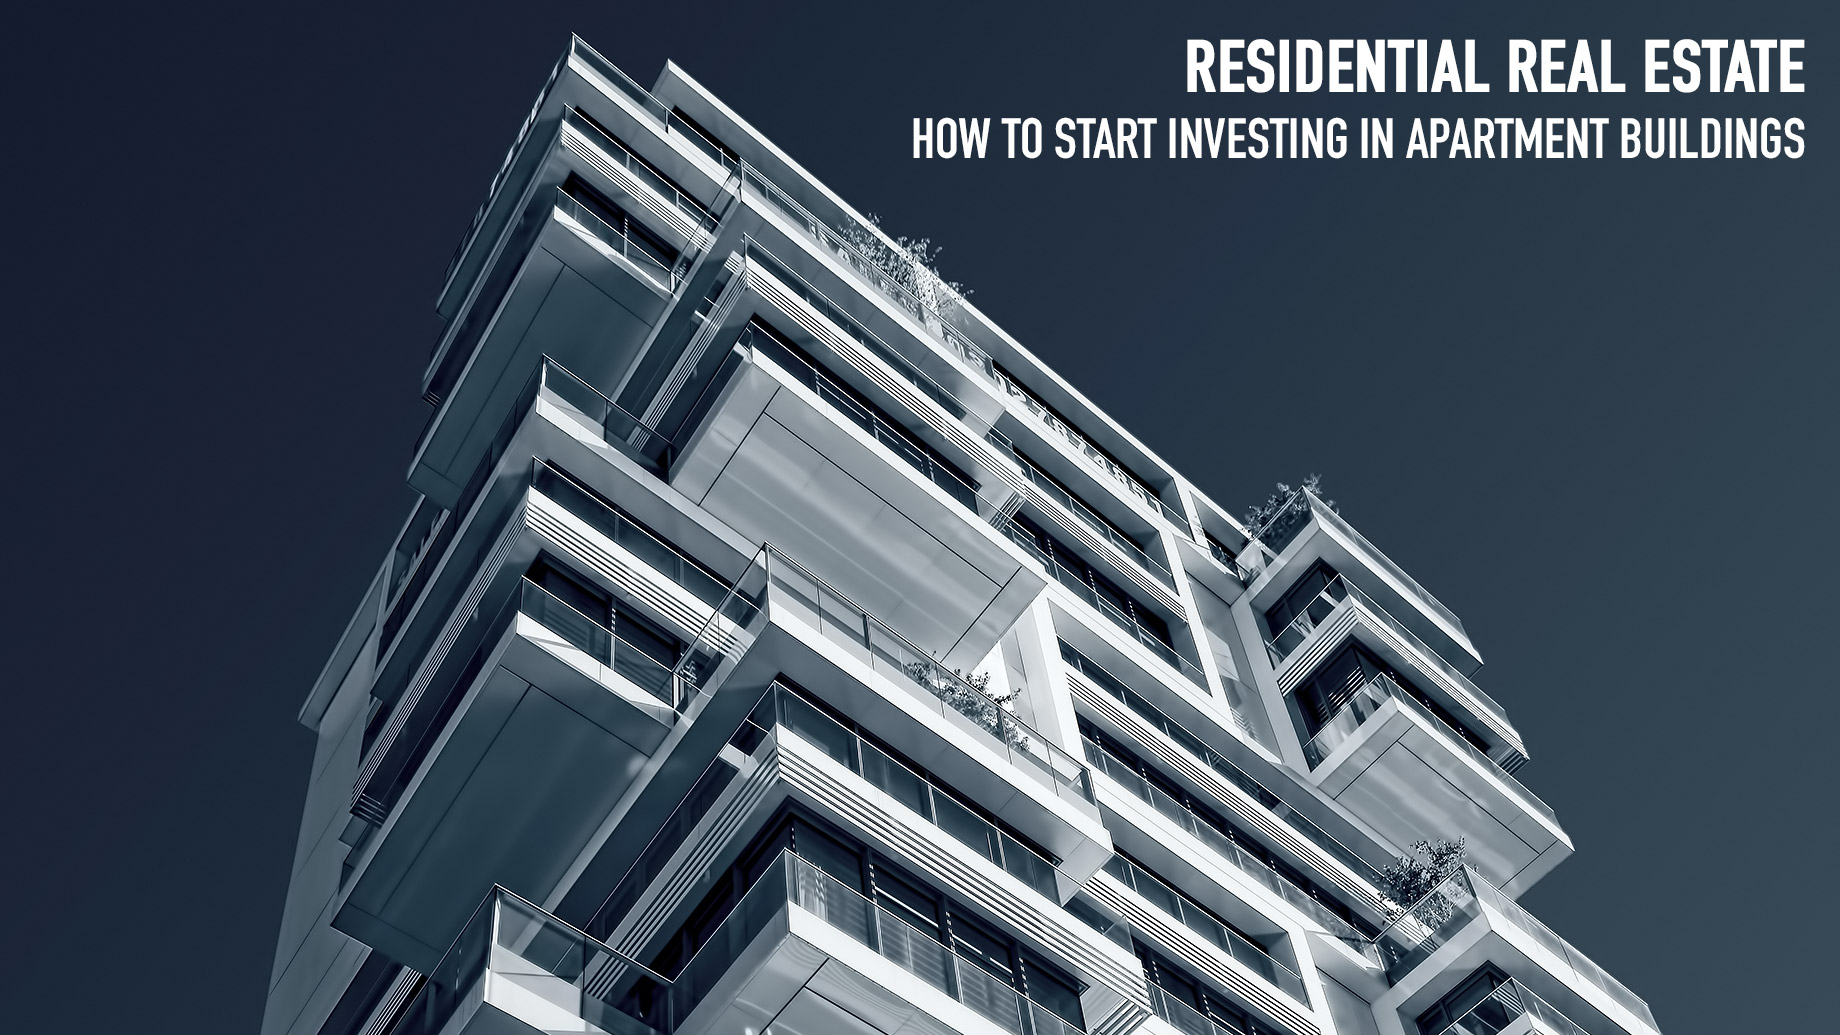 Residential Real Estate - How to Start Investing in Apartment Buildings